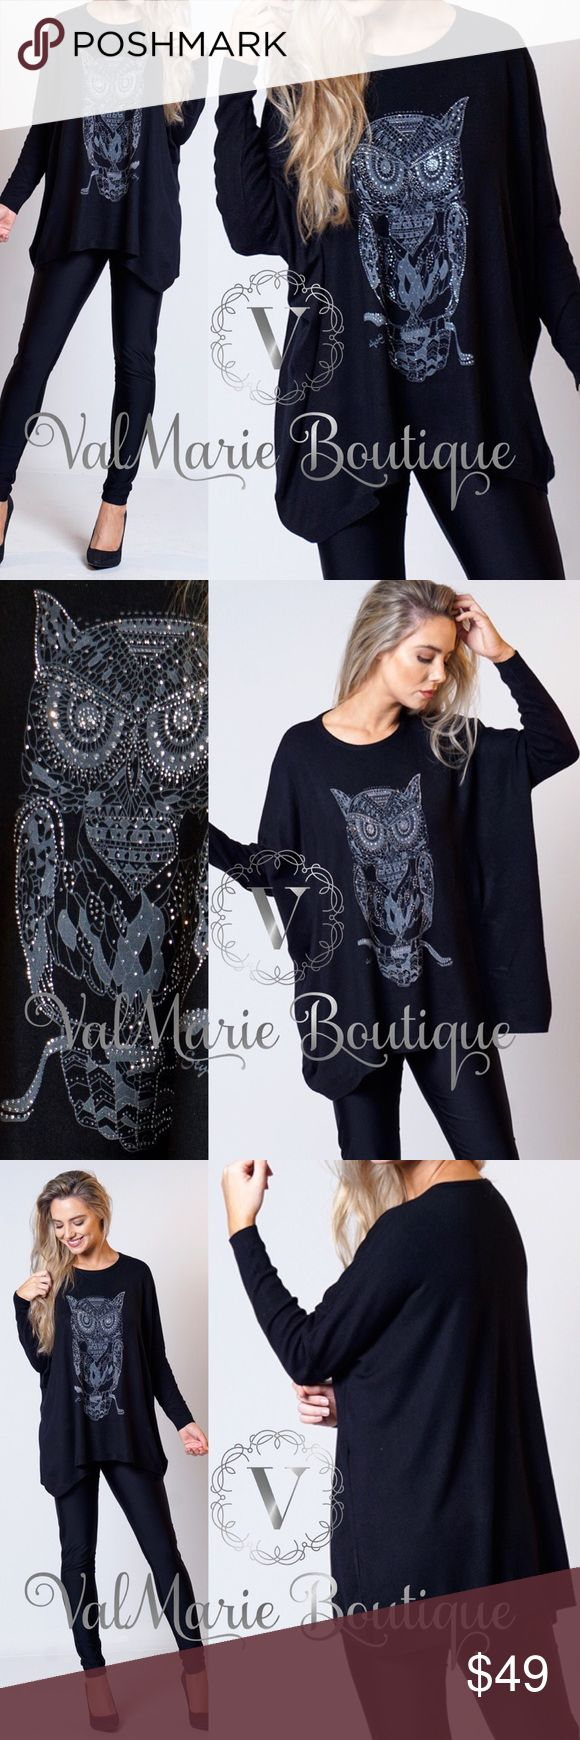 """💠RESTOCKED- Buttery Soft Rhinestone Owl Sweater The softest sweater EVER!!!! One size fits most because it's baggy, soft and oversized. Fits sizes 2-12. You won't regret buying this. This sweater almost has a cashmere feel to it. Width of bust is 29"""" laying flat! So versatile and amazing. 80% viscose, 15% poly, 5% Spandex. Gorgeous Rhinestone owl. ValMarie Sweaters"""